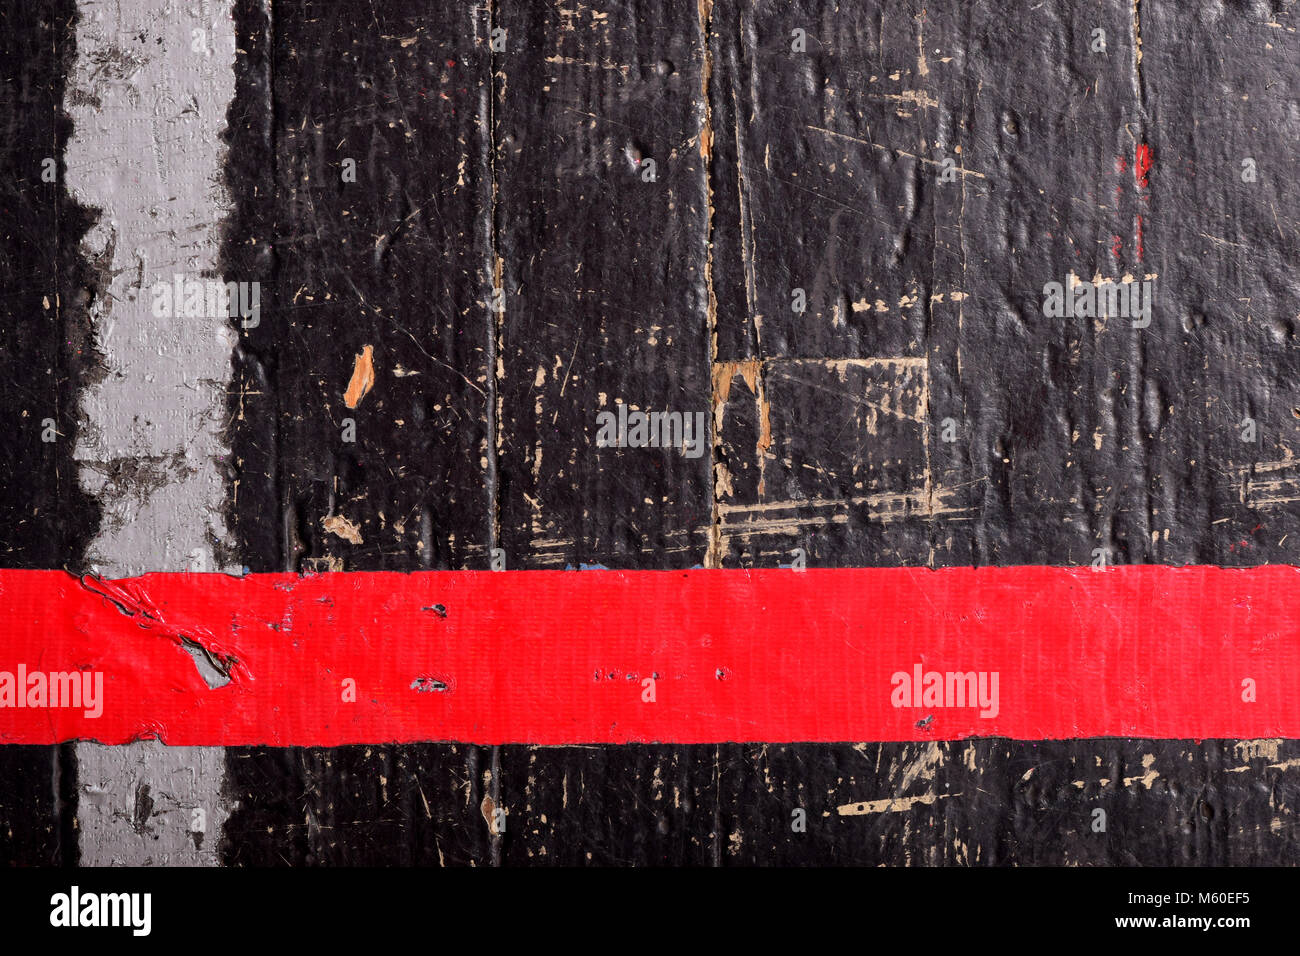 Scuffed wooden gym floor with peeling tape. - Stock Image